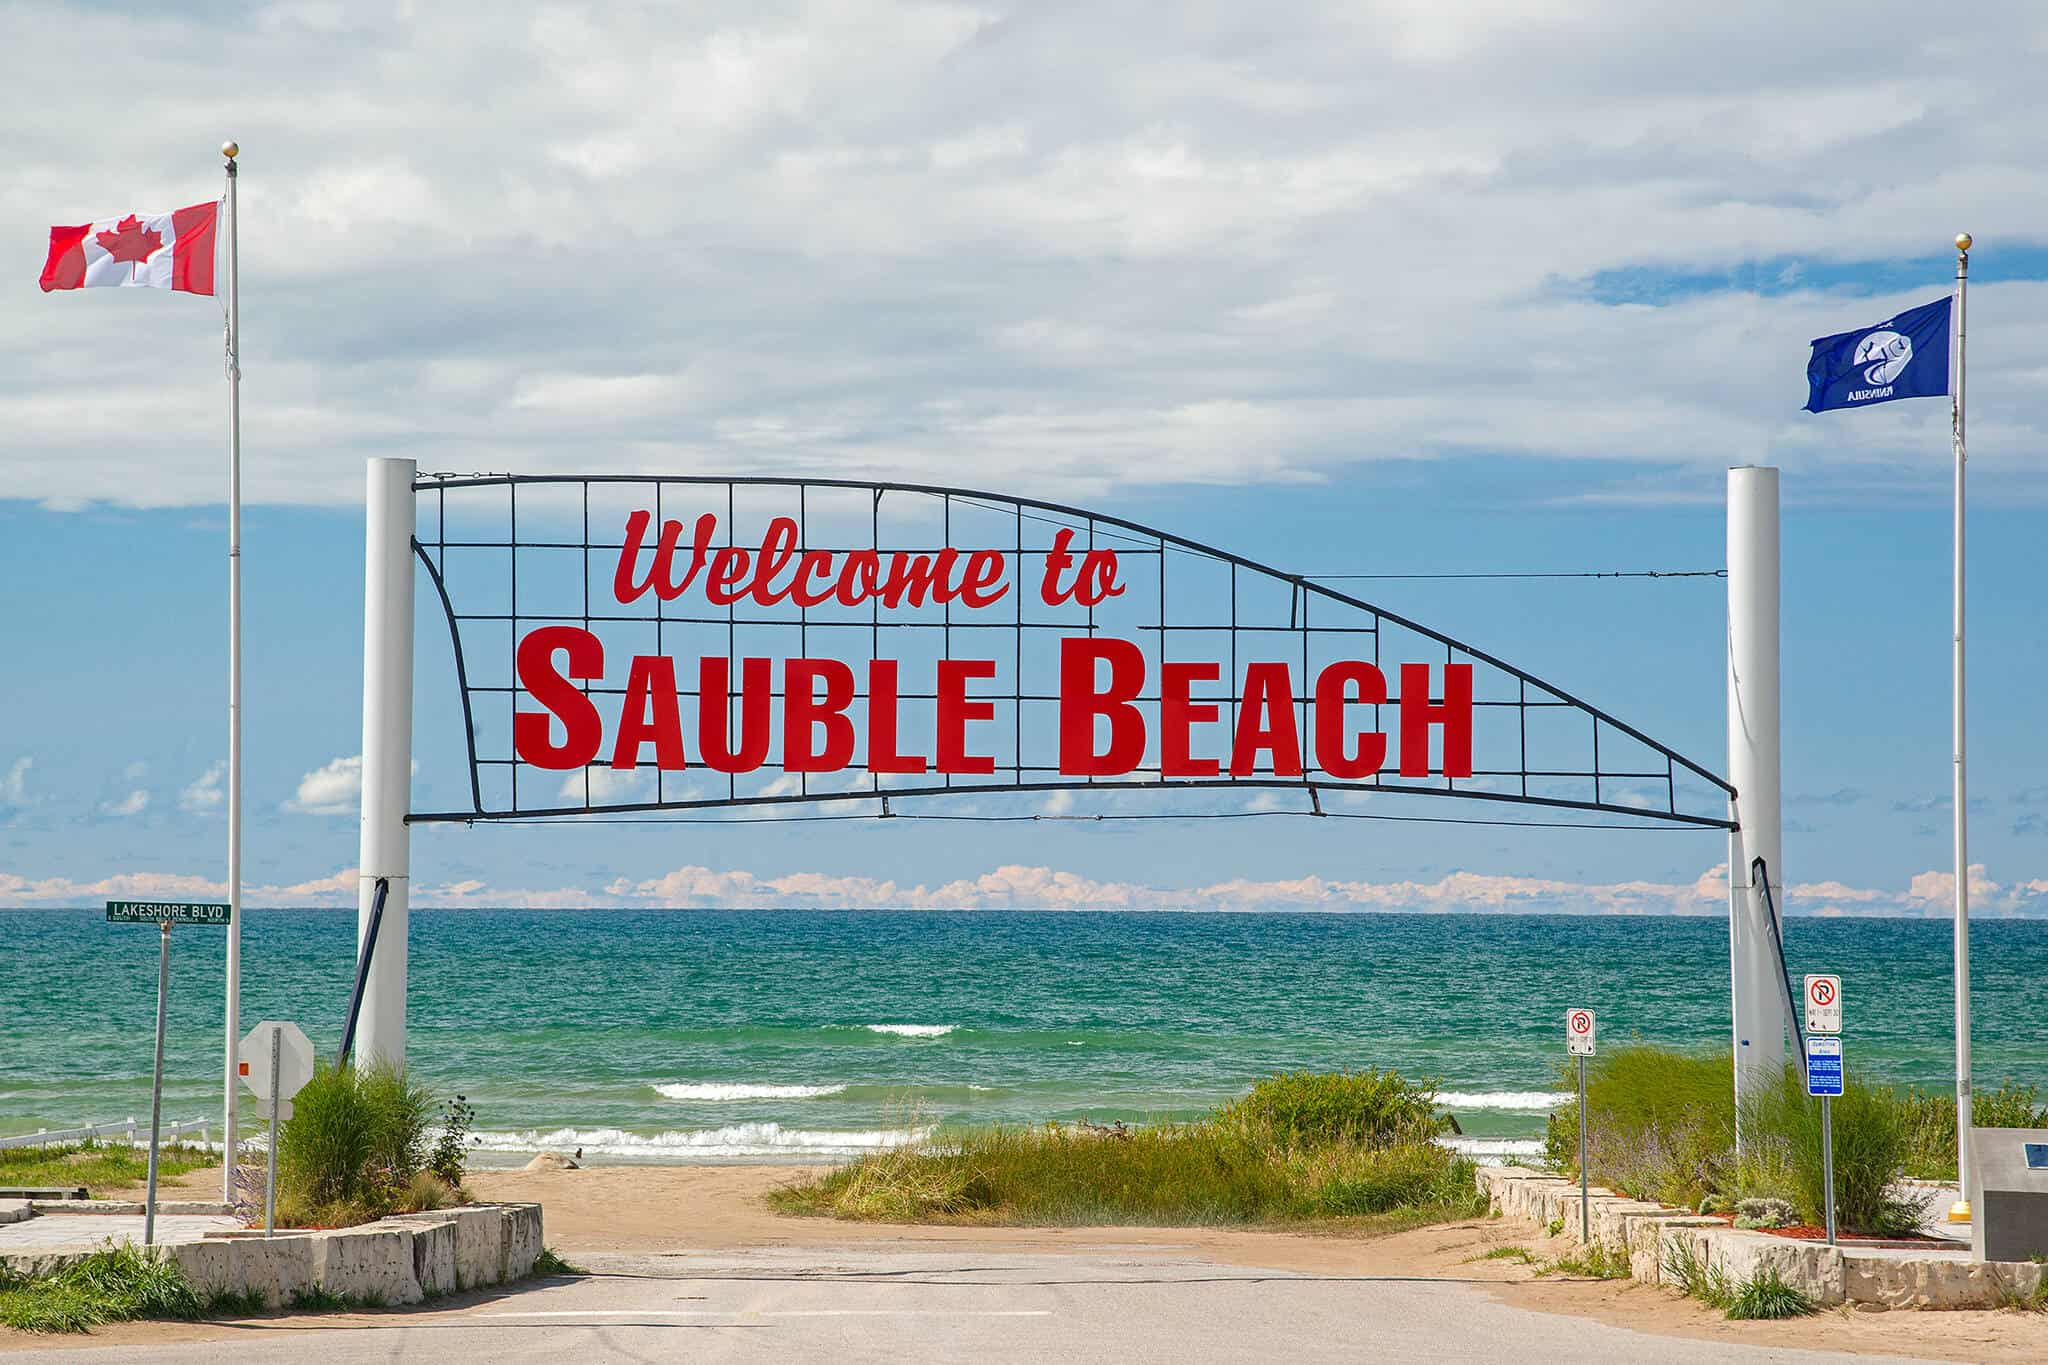 If you are looking for the best beach in Ontario, you should consider Sauble Beach Ontario. It is the best beach in Ontario.